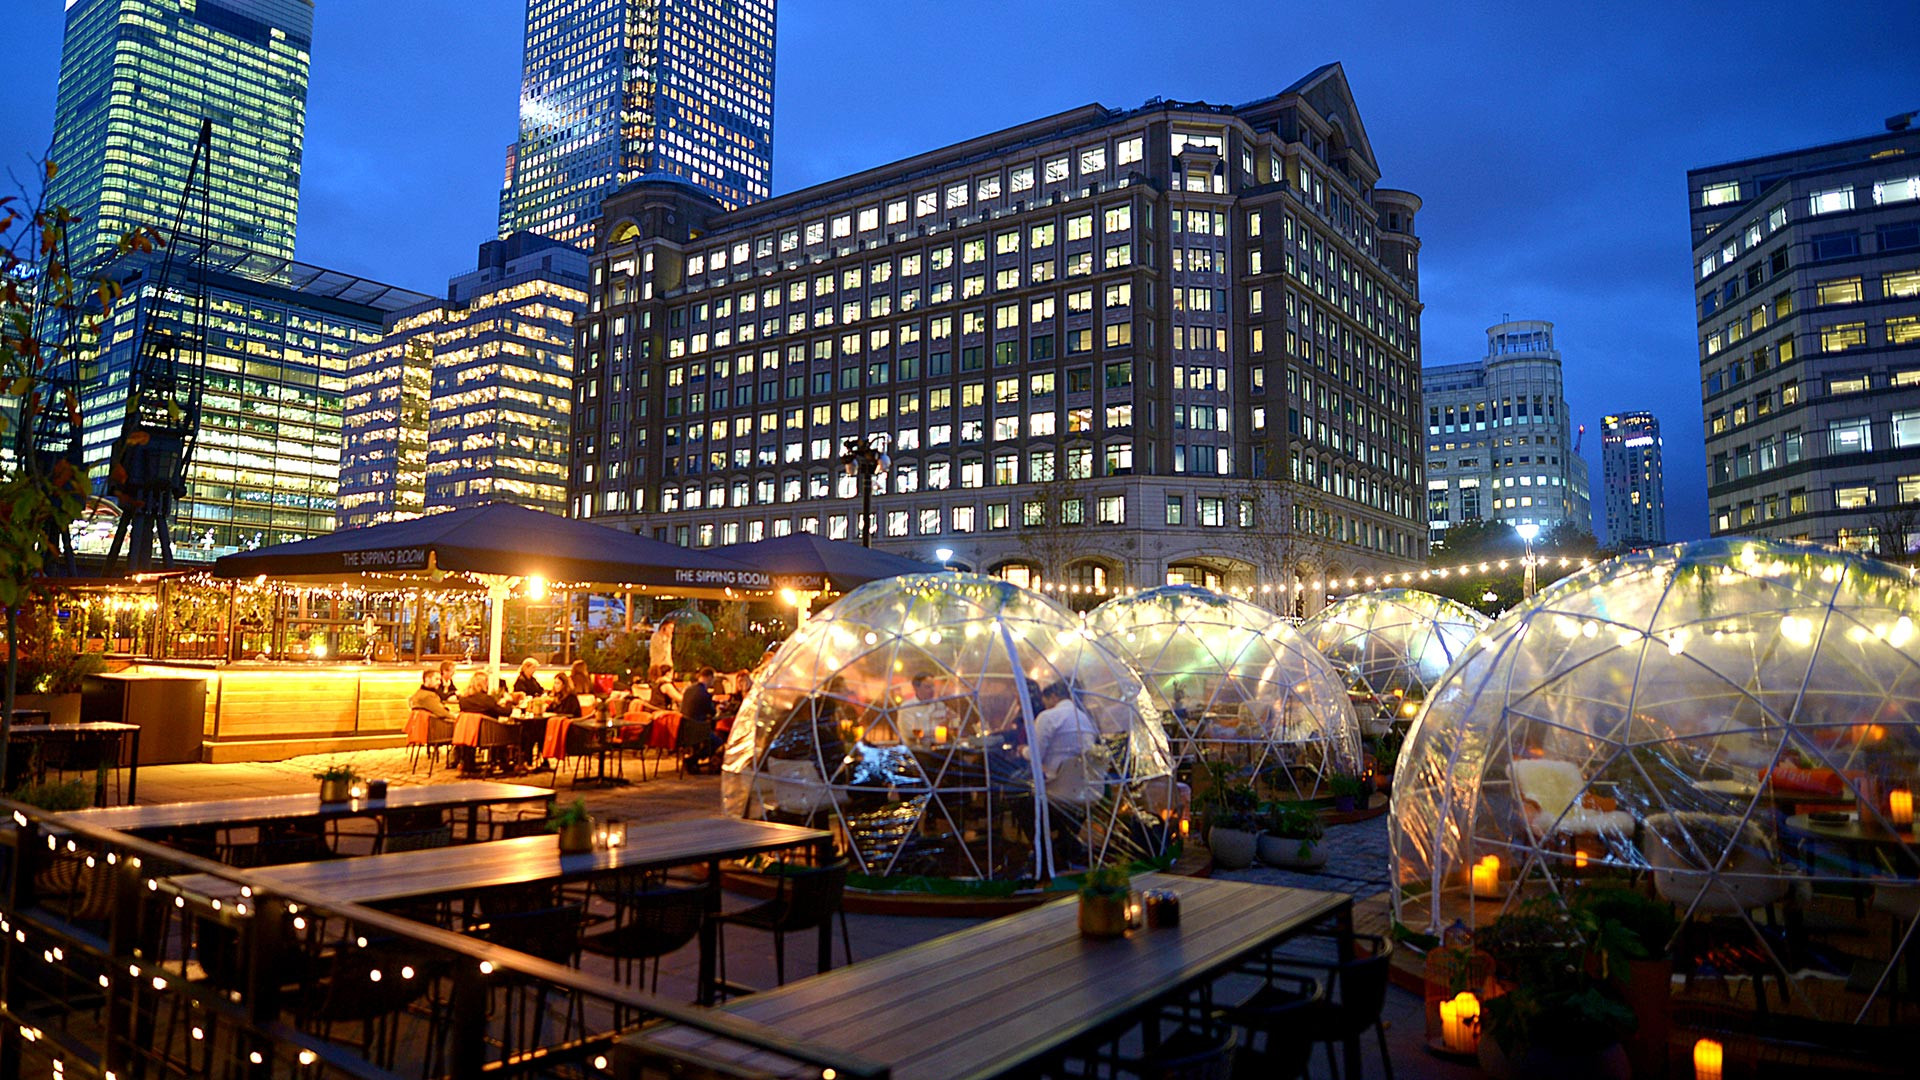 The Sipping Room's igloos